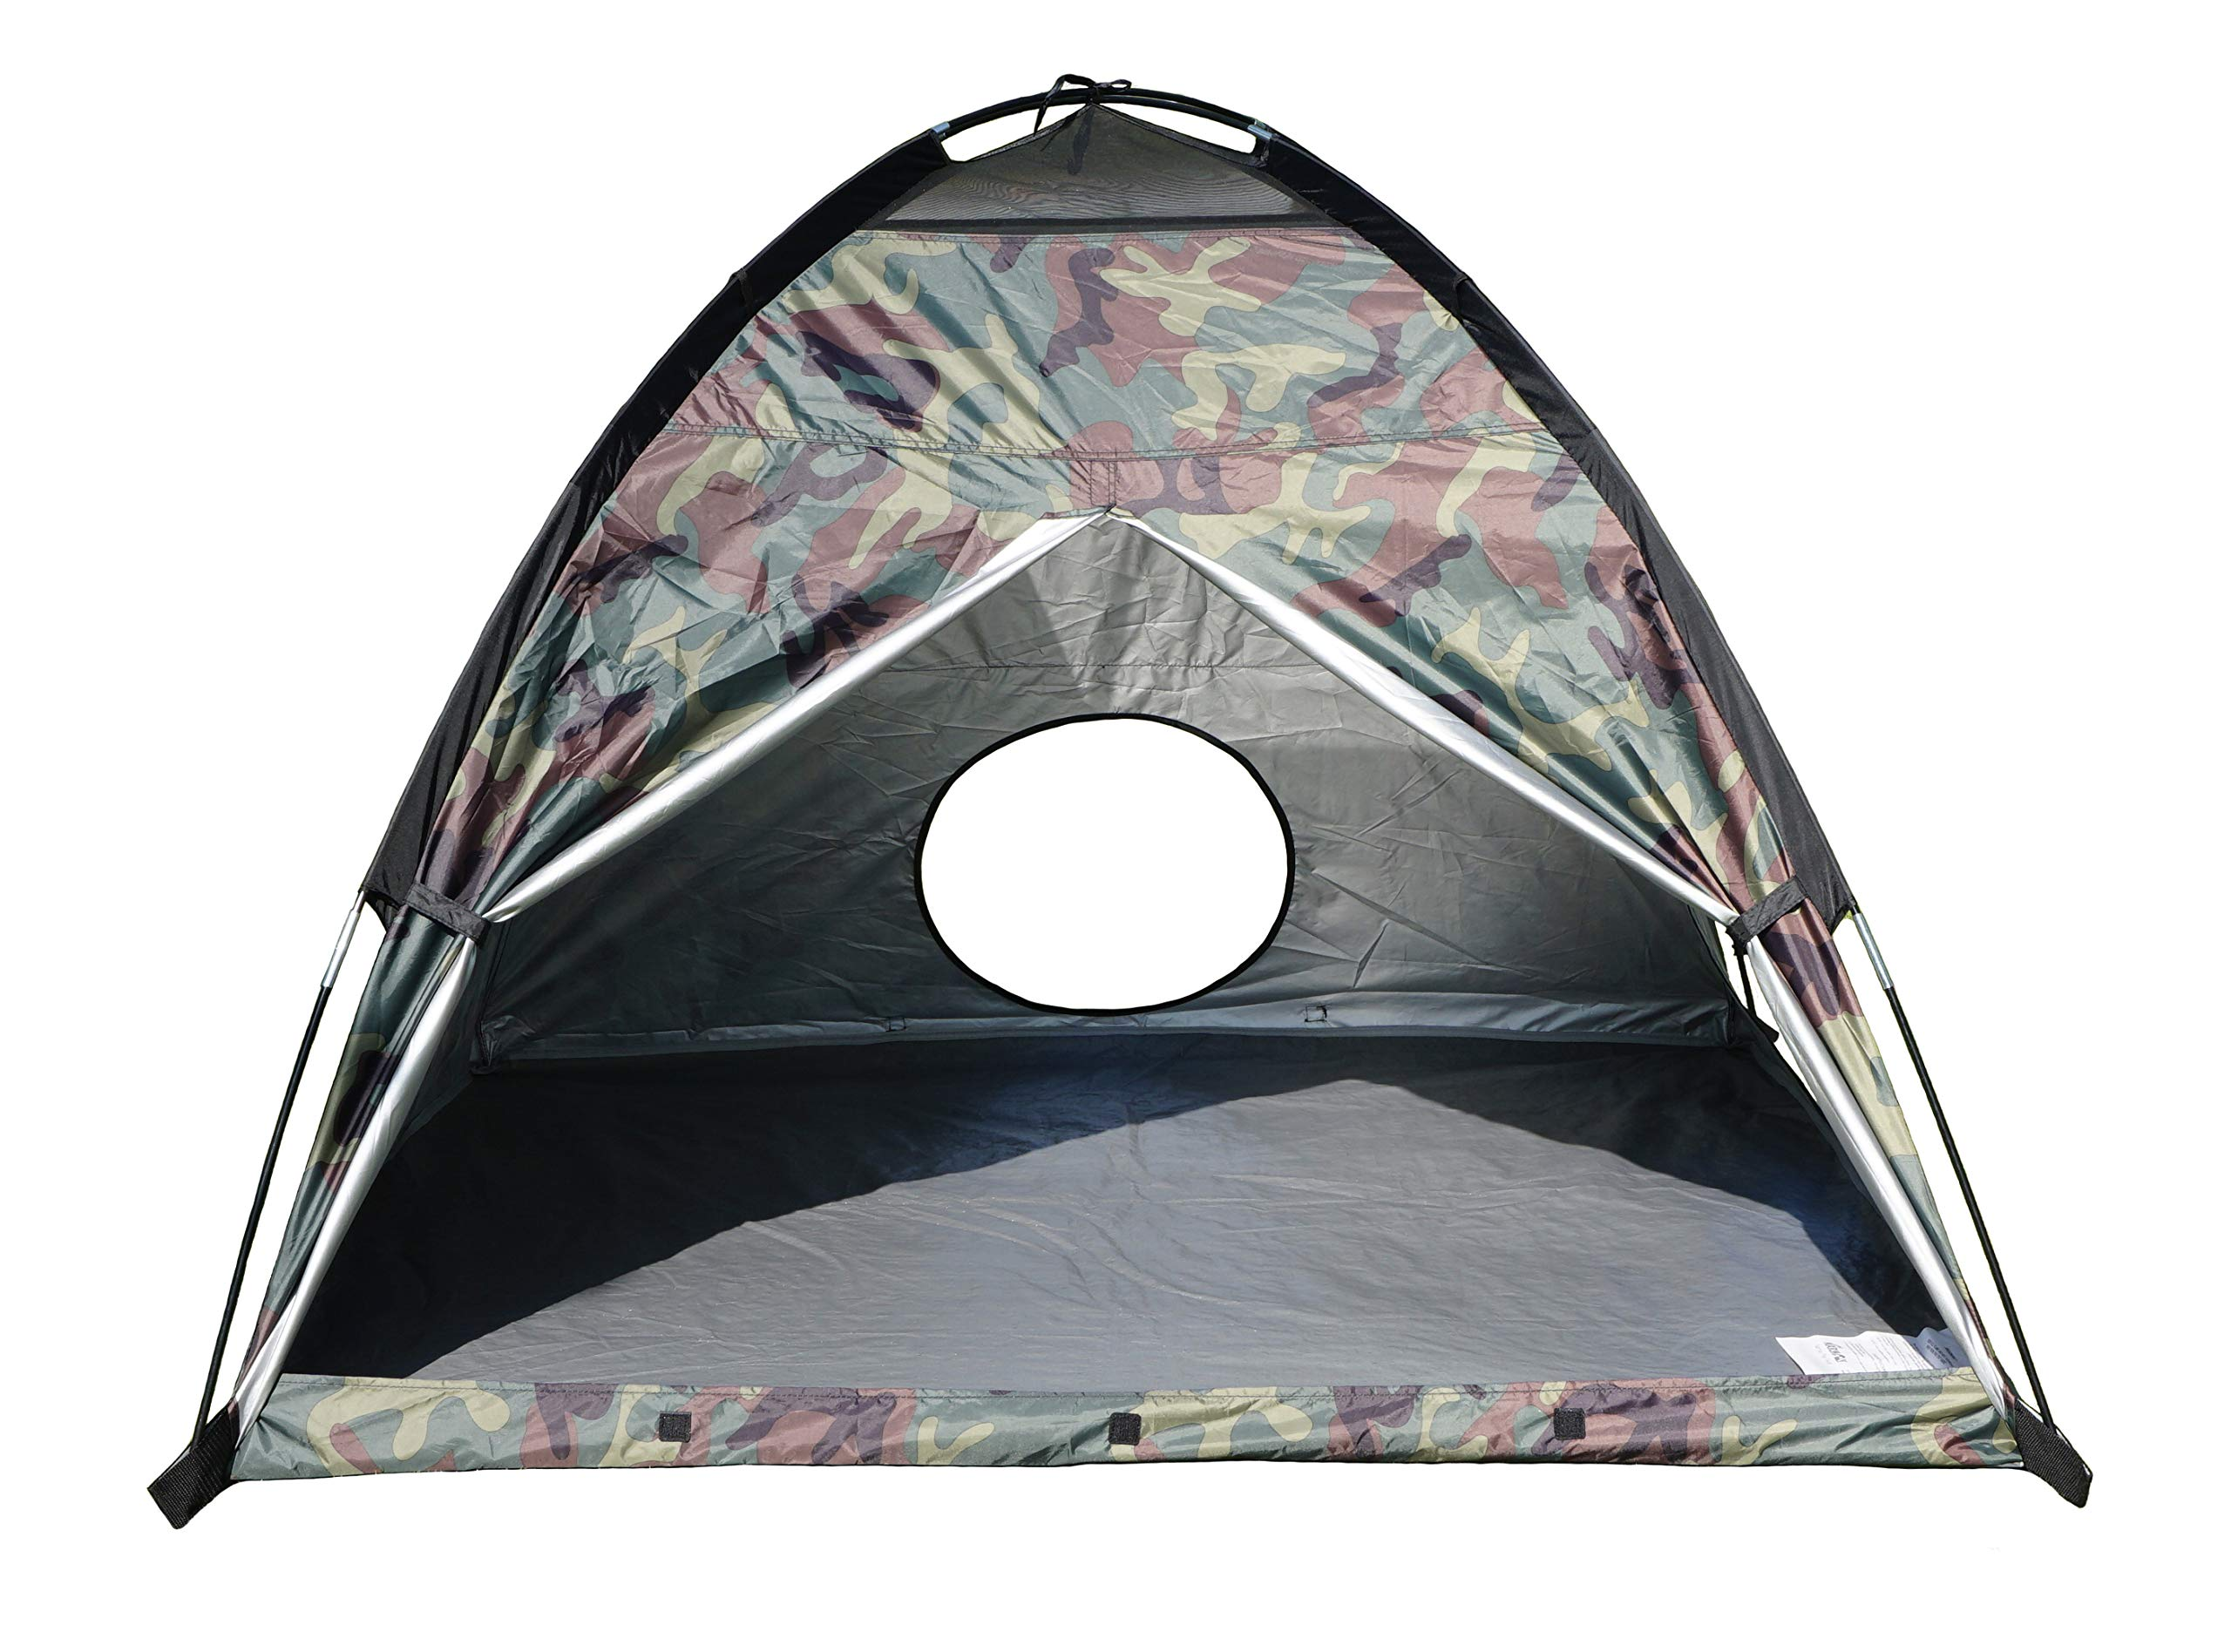 NARMAY Play Tent Camouflage Dome Tent for Kids Indoor / Outdoor Fun - 60 x 60 x 44 inch by NARMAY (Image #7)